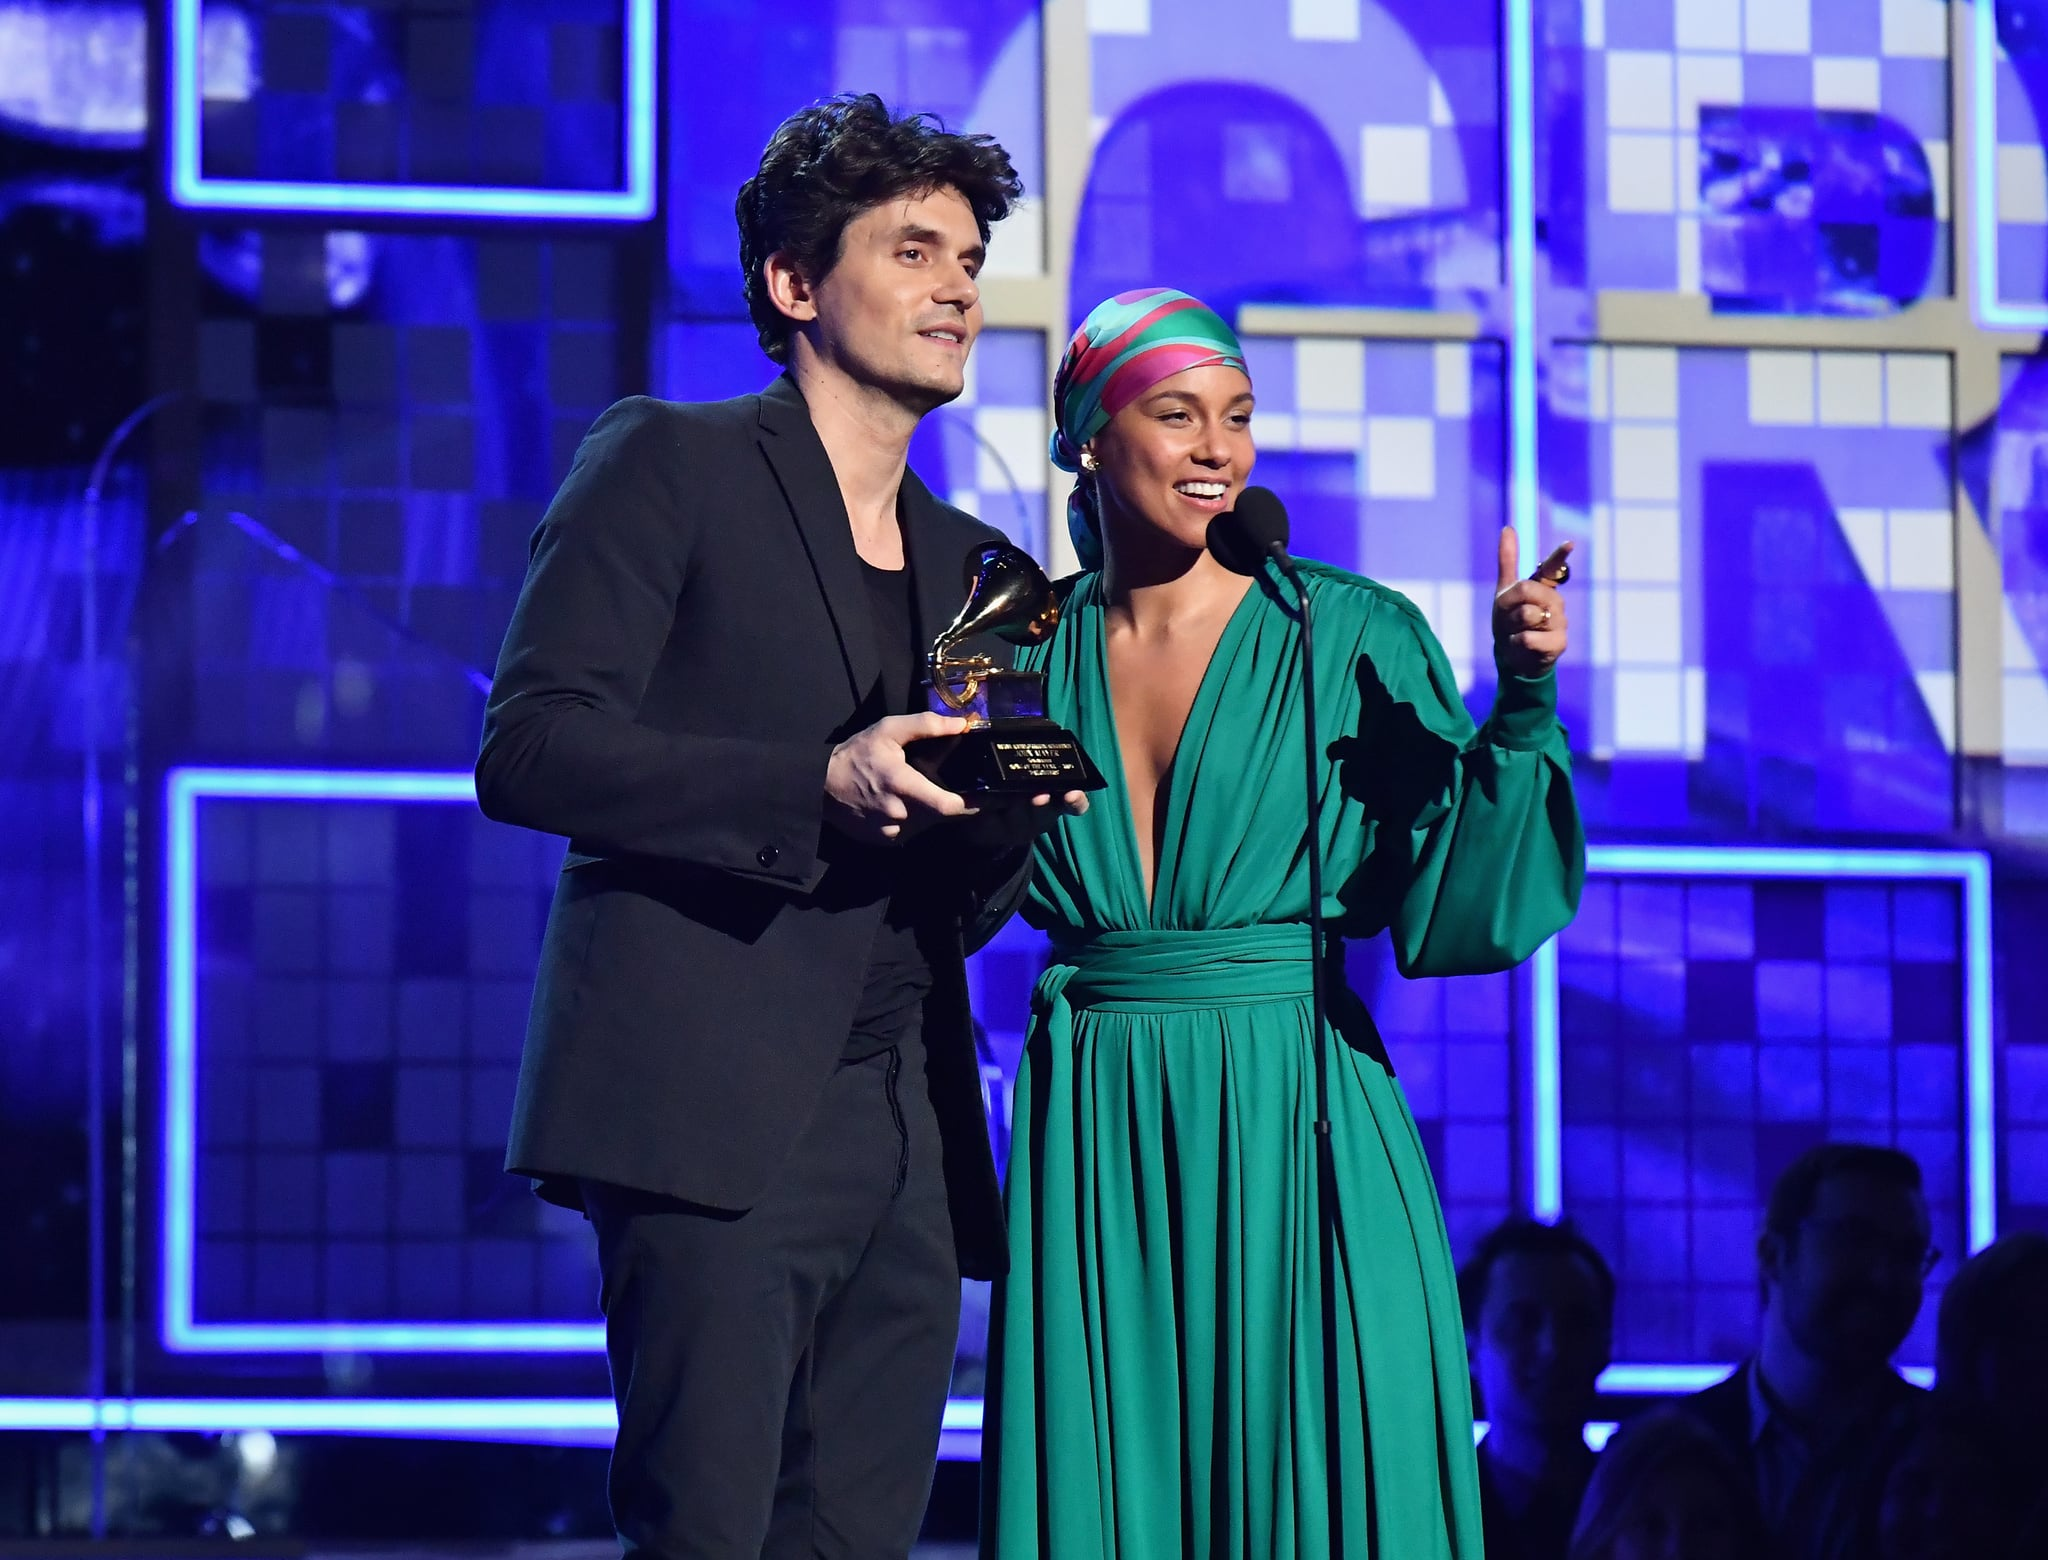 LOS ANGELES, CA - FEBRUARY 10:  John Mayer (L) and Alicia Keys speak onstage during the 61st Annual GRAMMY Awards at Staples Center on February 10, 2019 in Los Angeles, California.  (Photo by Jeff Kravitz/FilmMagic)